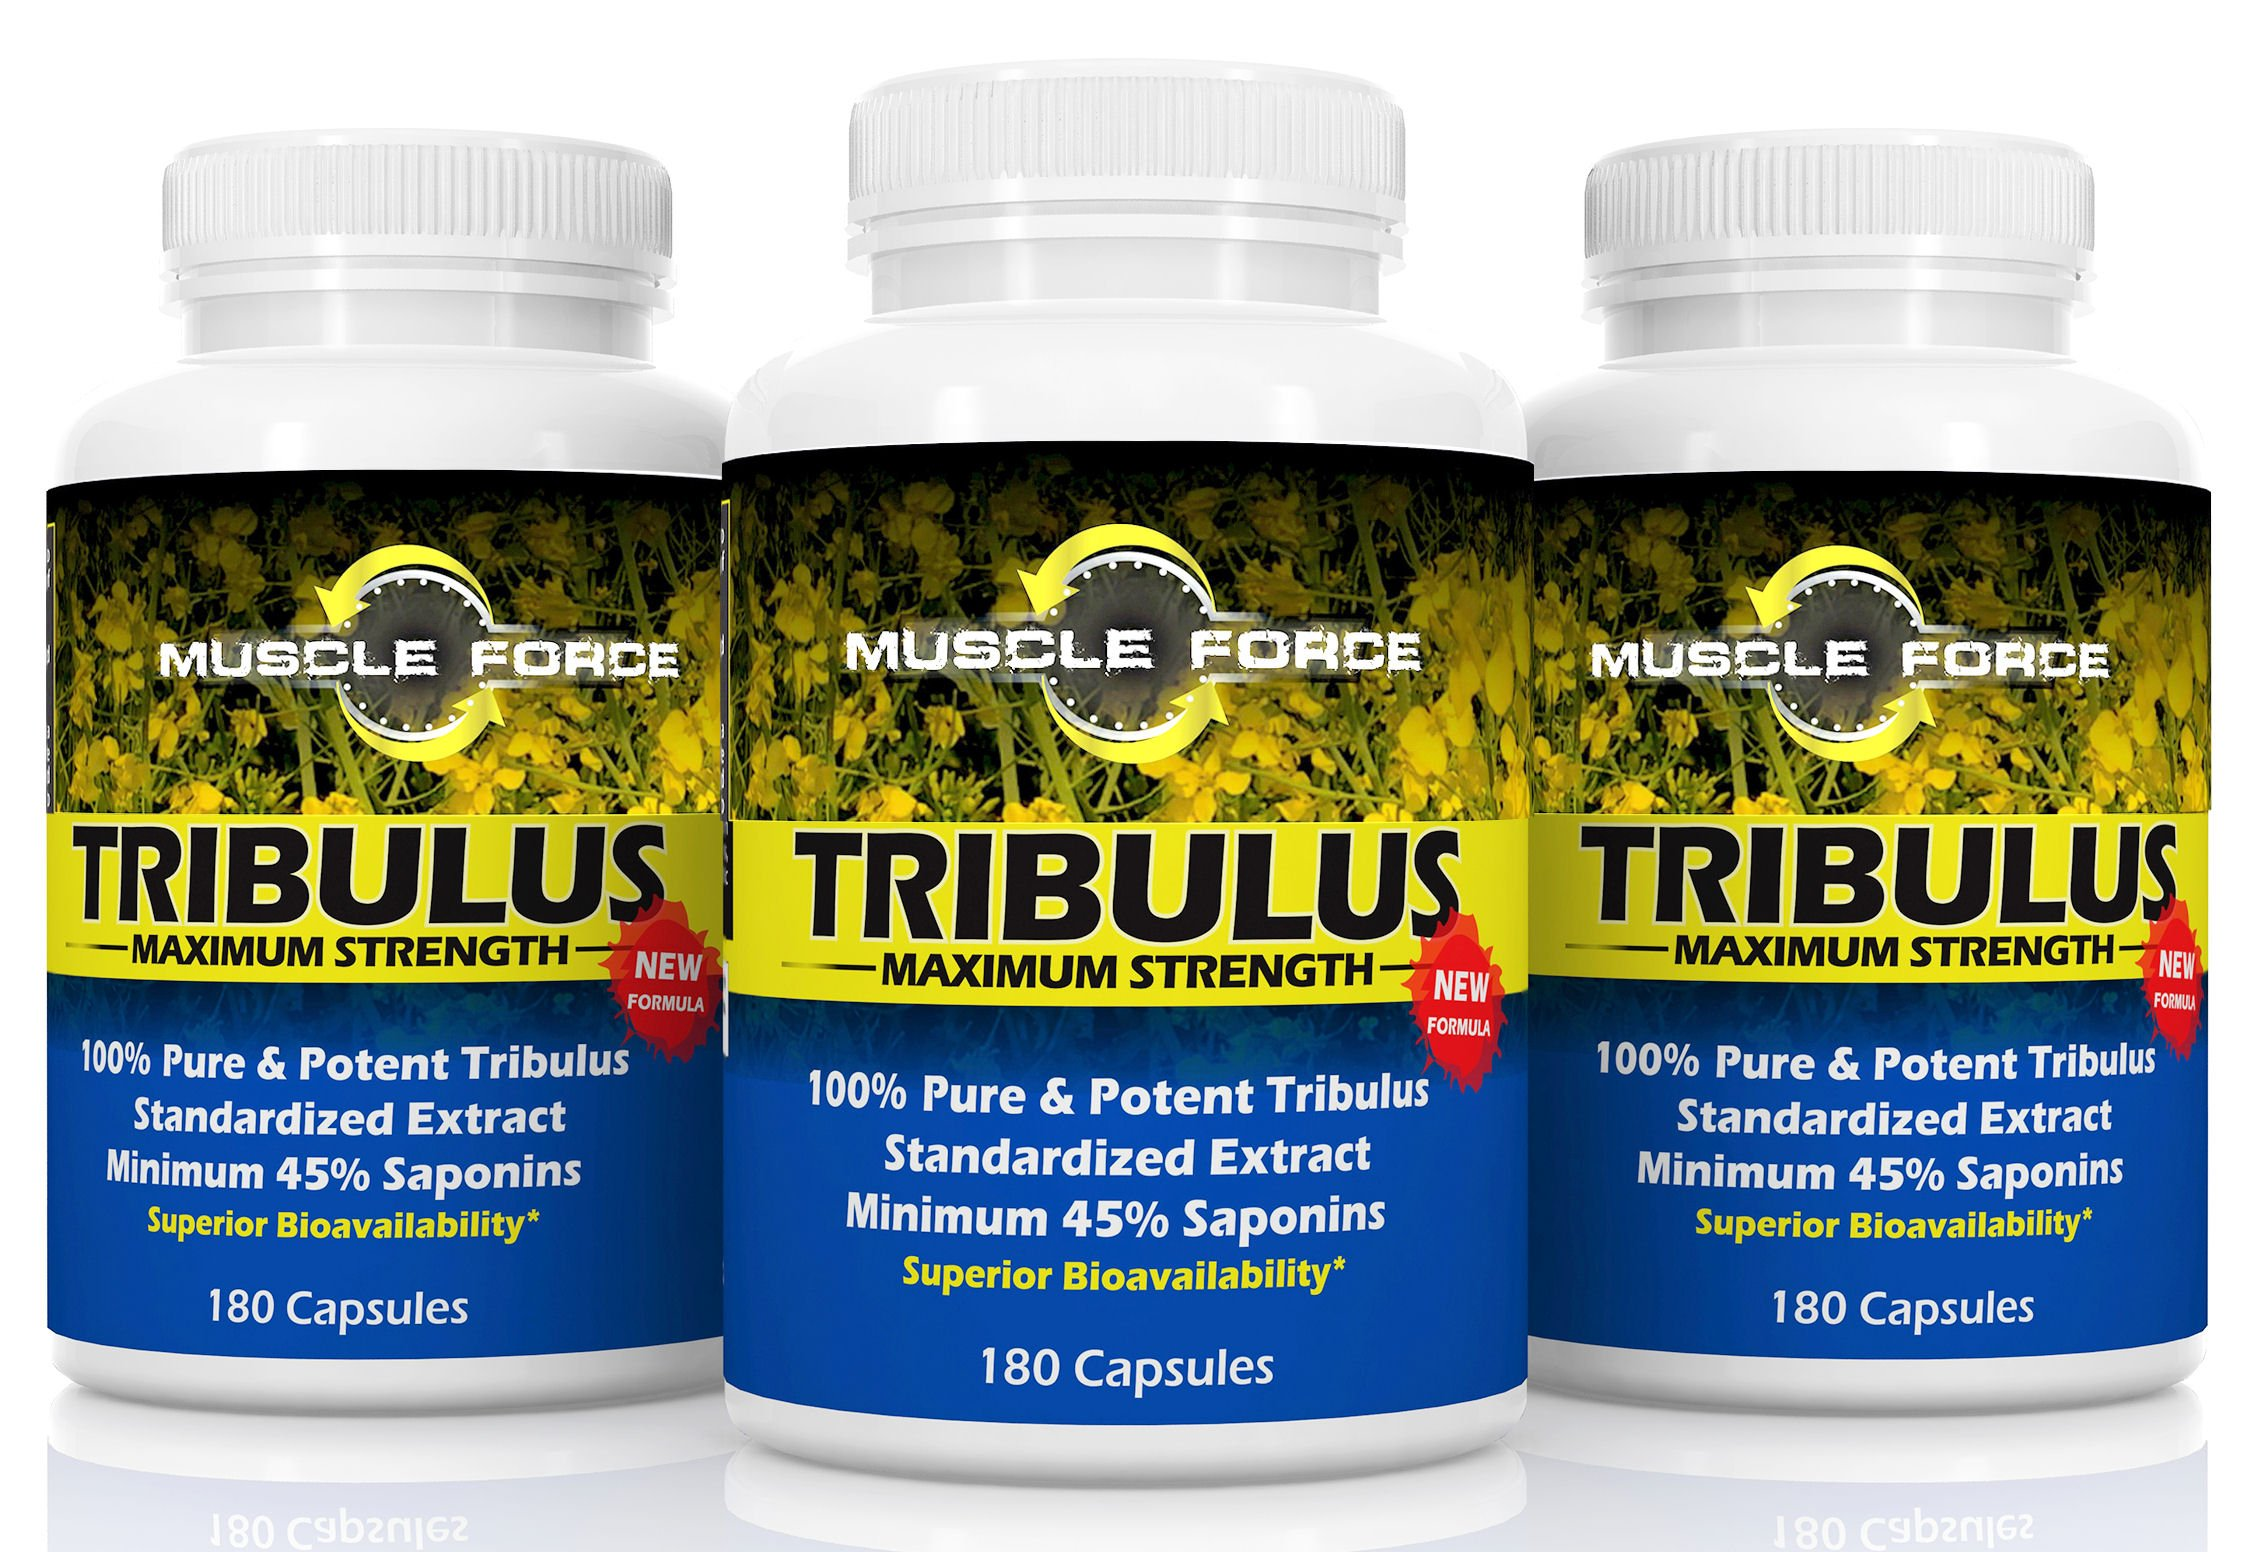 #1 Rated Muscle Force Tribulus Terrestris | Three Bottle Pack - 540 Capsules | 1500mg of Bulgarian Tribulus | 45% Saponins | New BIOAVAILABILITY Factor | Maximize Testosterone Levels | Ships Free